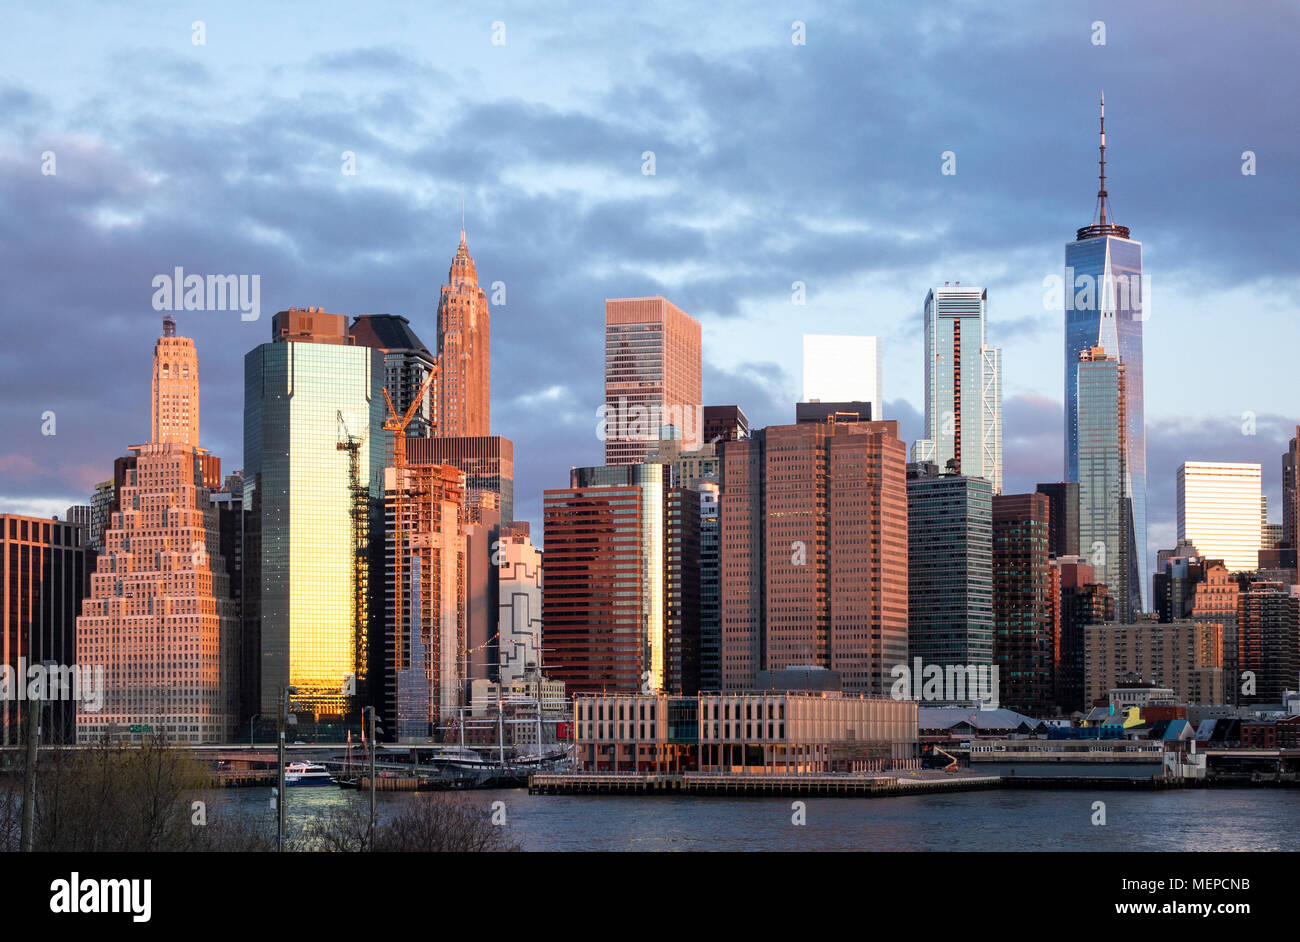 Lower Manhattan skylight as seen from Brooklyn at dawn - Stock Image